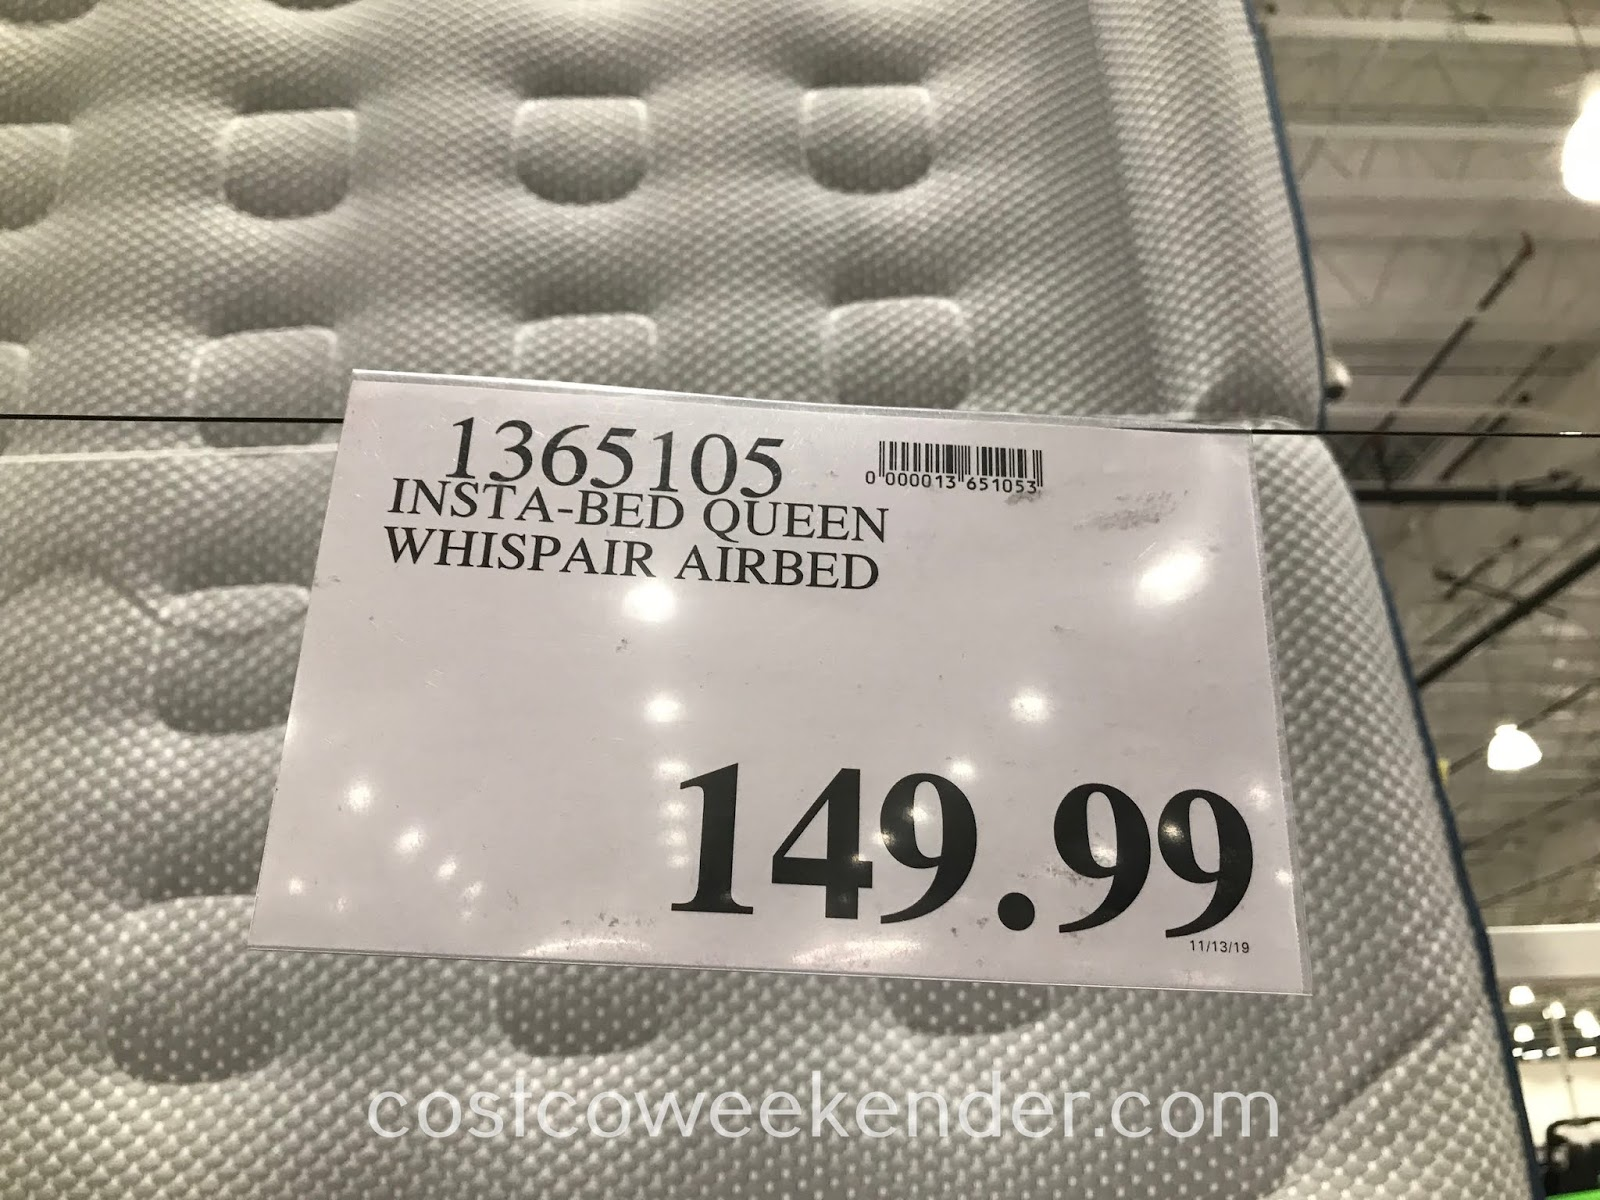 Costco 1365105 - Deal for the Insta-Bed Queen Whispair Airbed at Costco